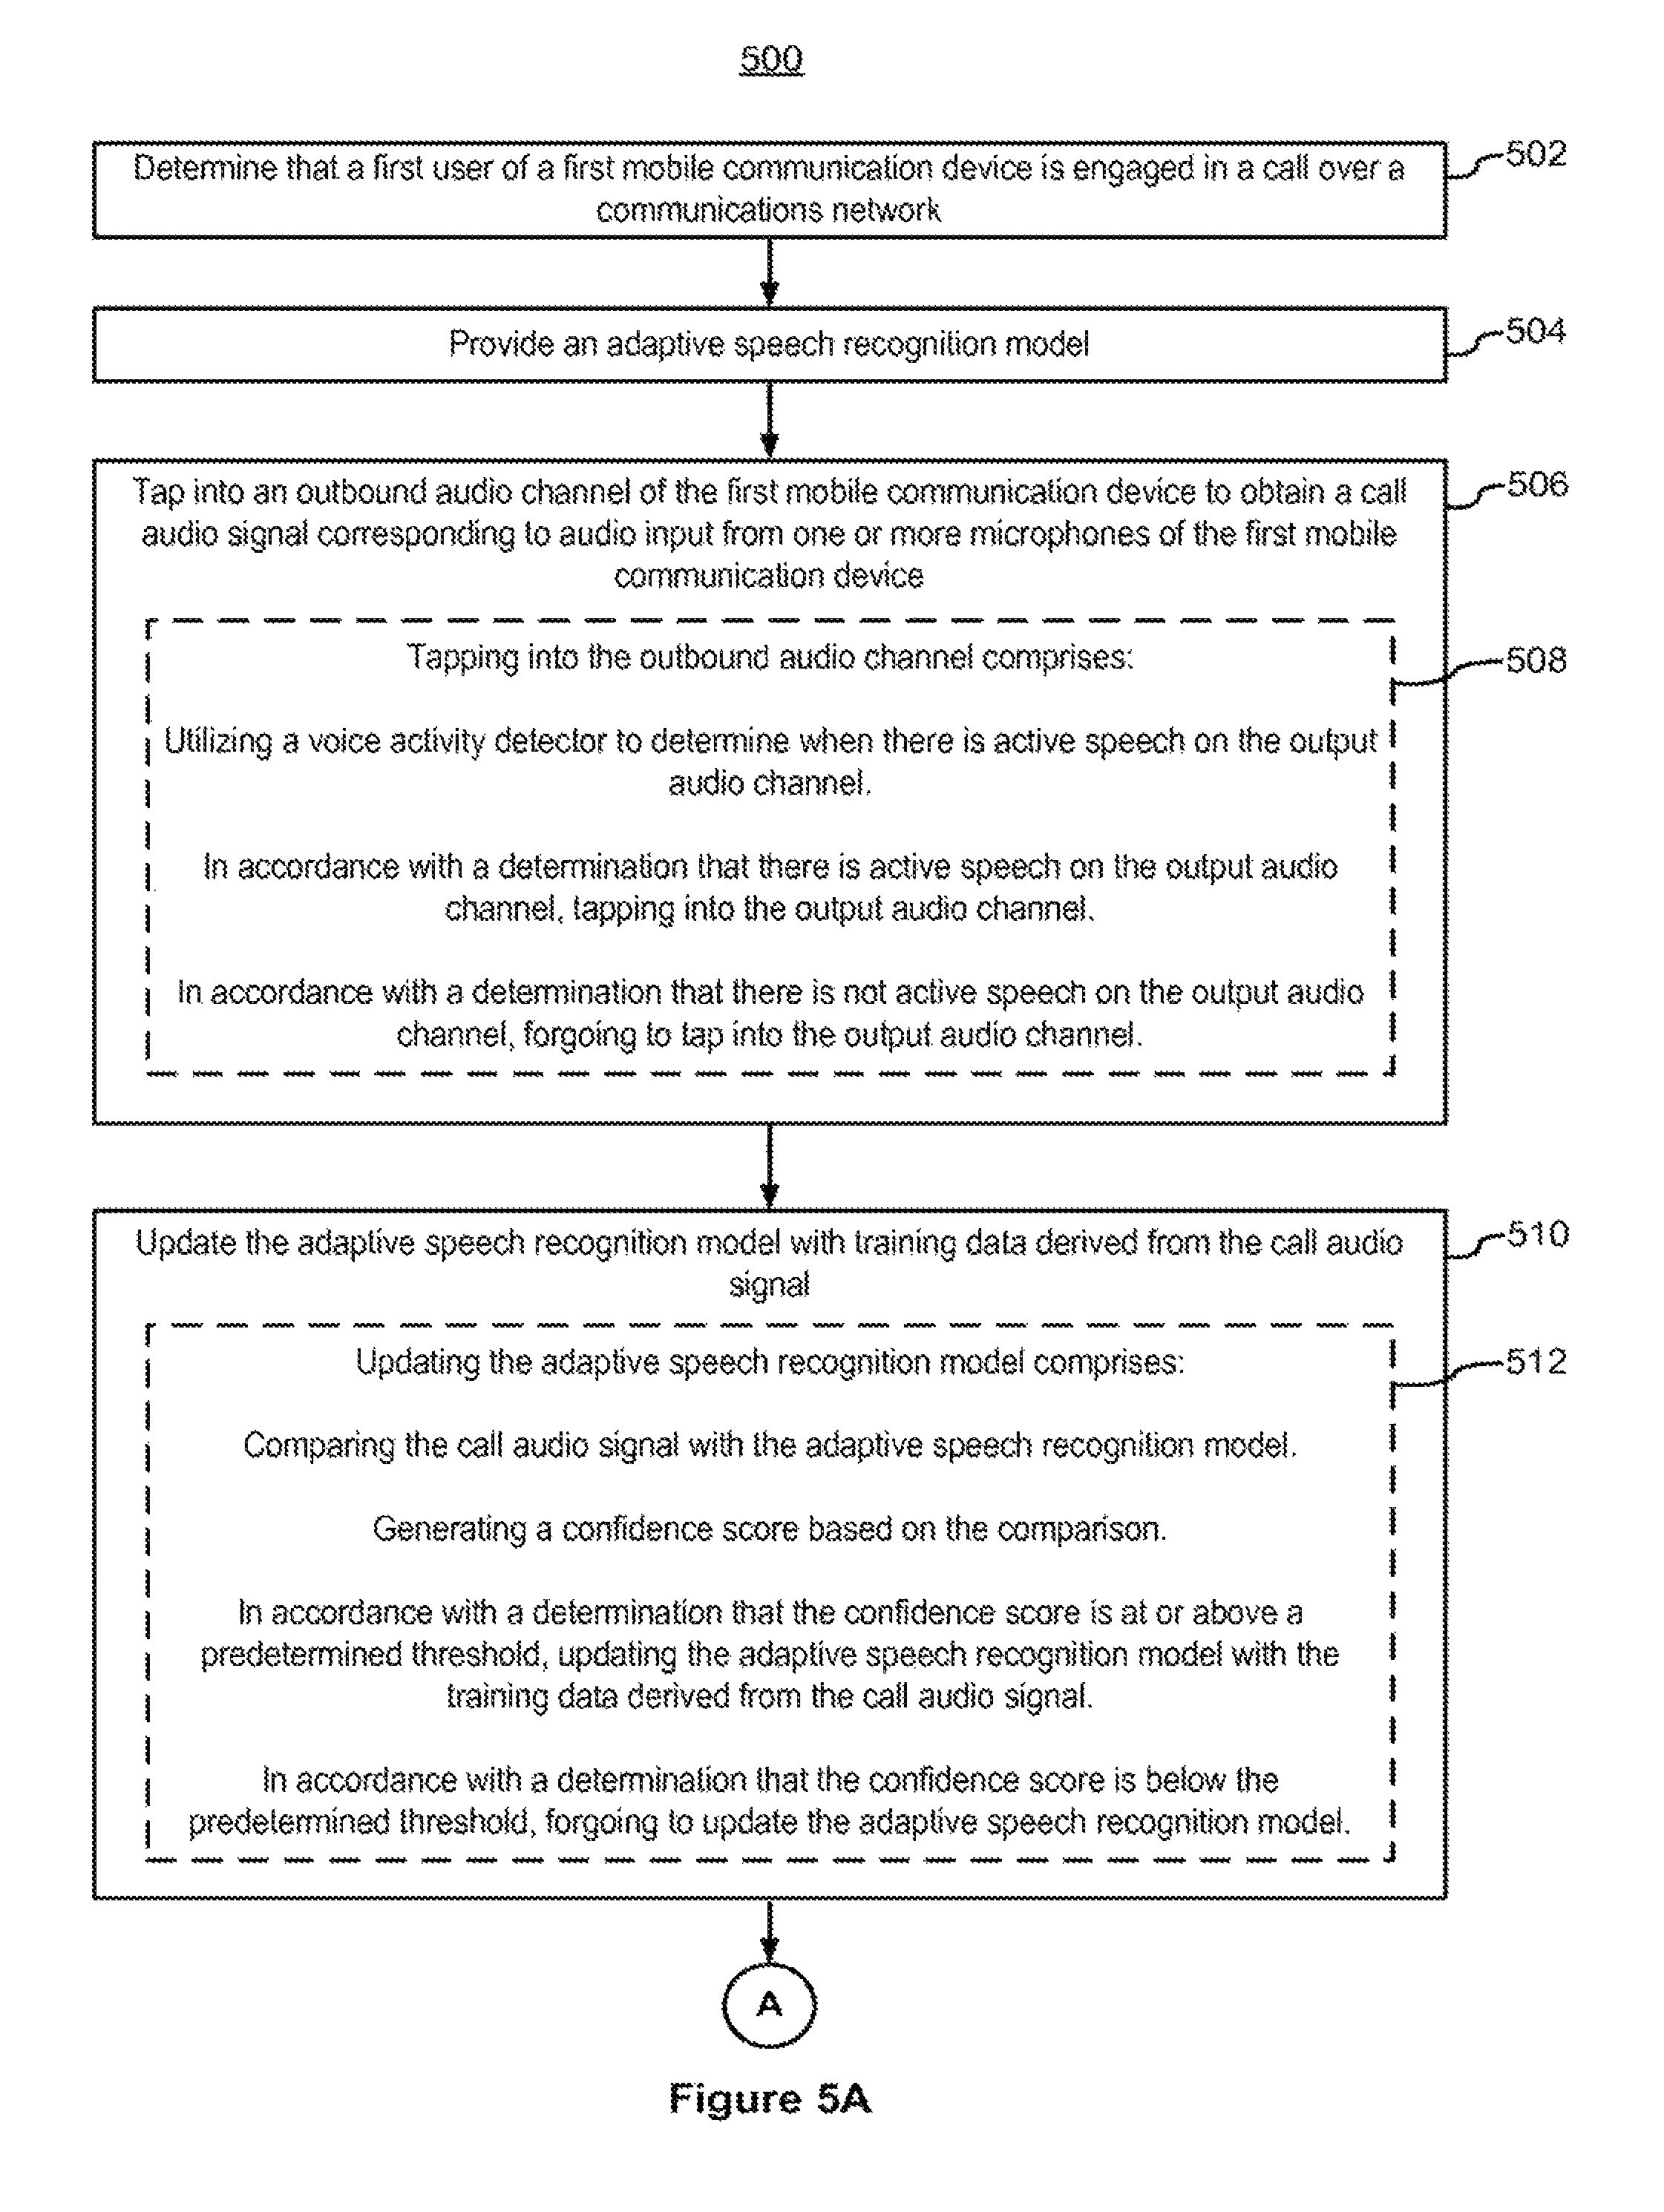 Us9697822b1 system and method for updating an adaptive speech us9697822b1 system and method for updating an adaptive speech recognition model google patents fandeluxe Image collections